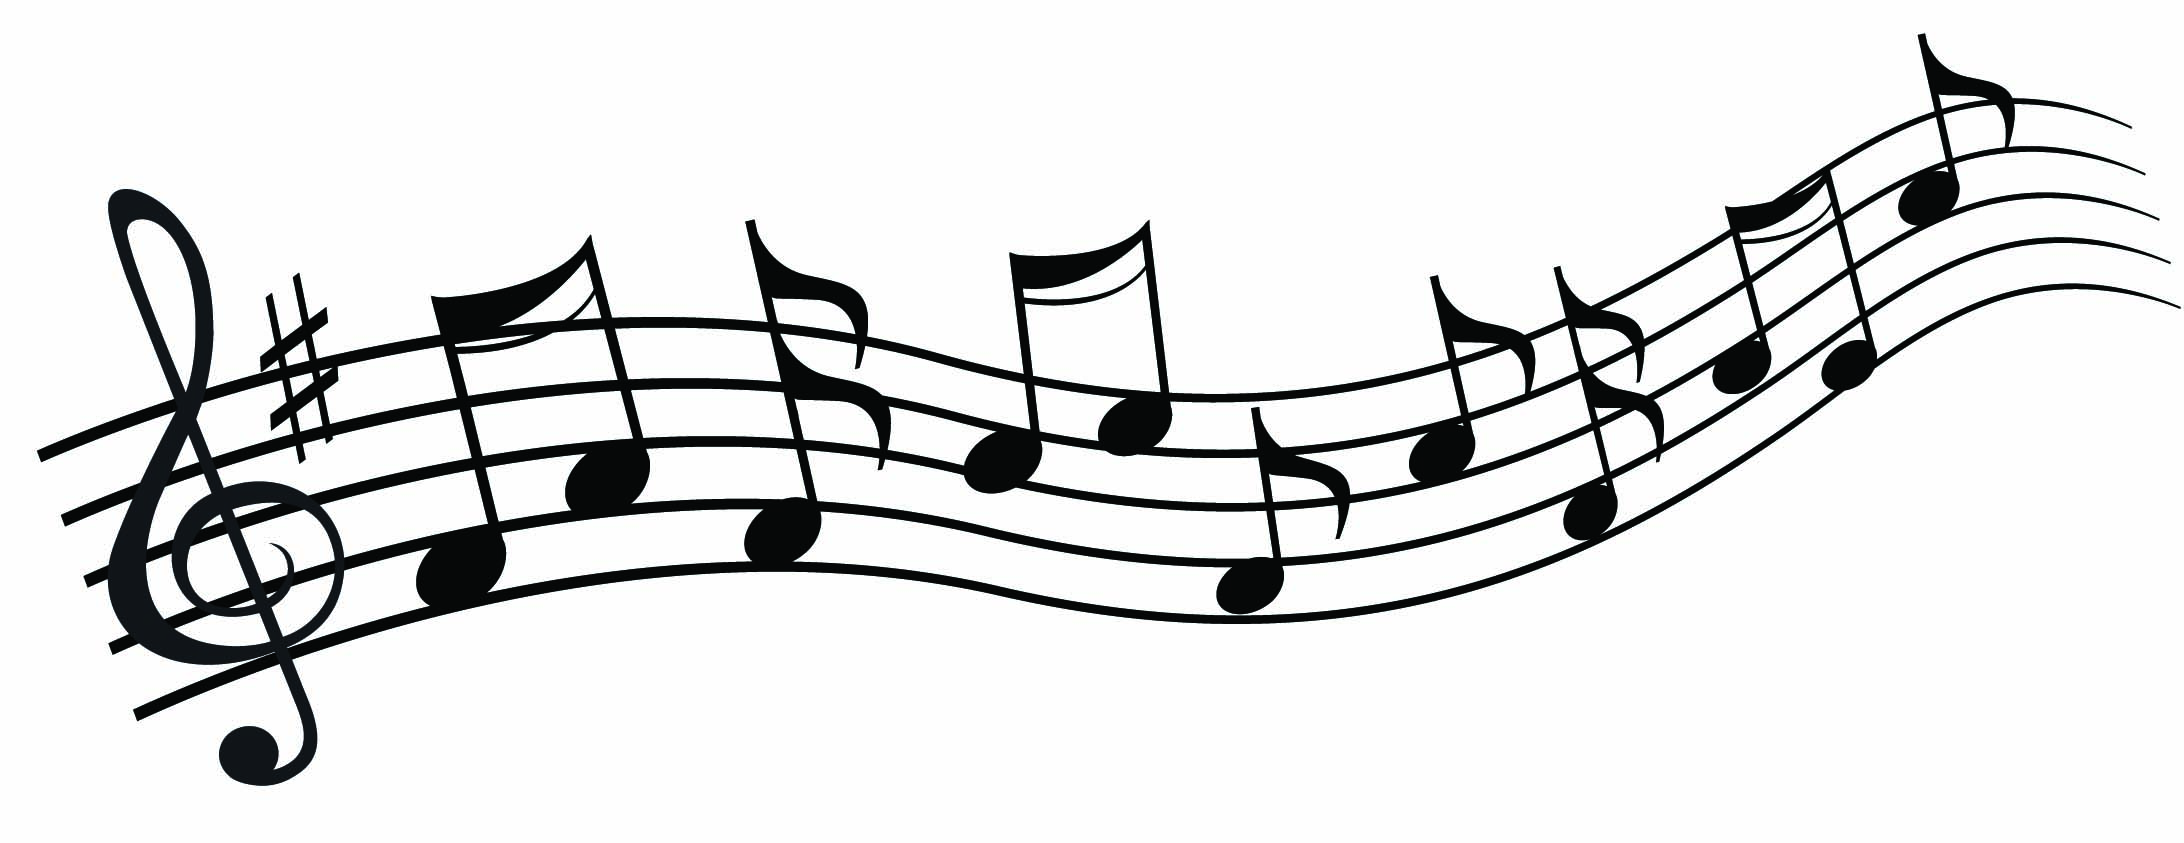 2184x843 Chic Design Musical Clipart Music Notes Clip Art Free Note Image 1